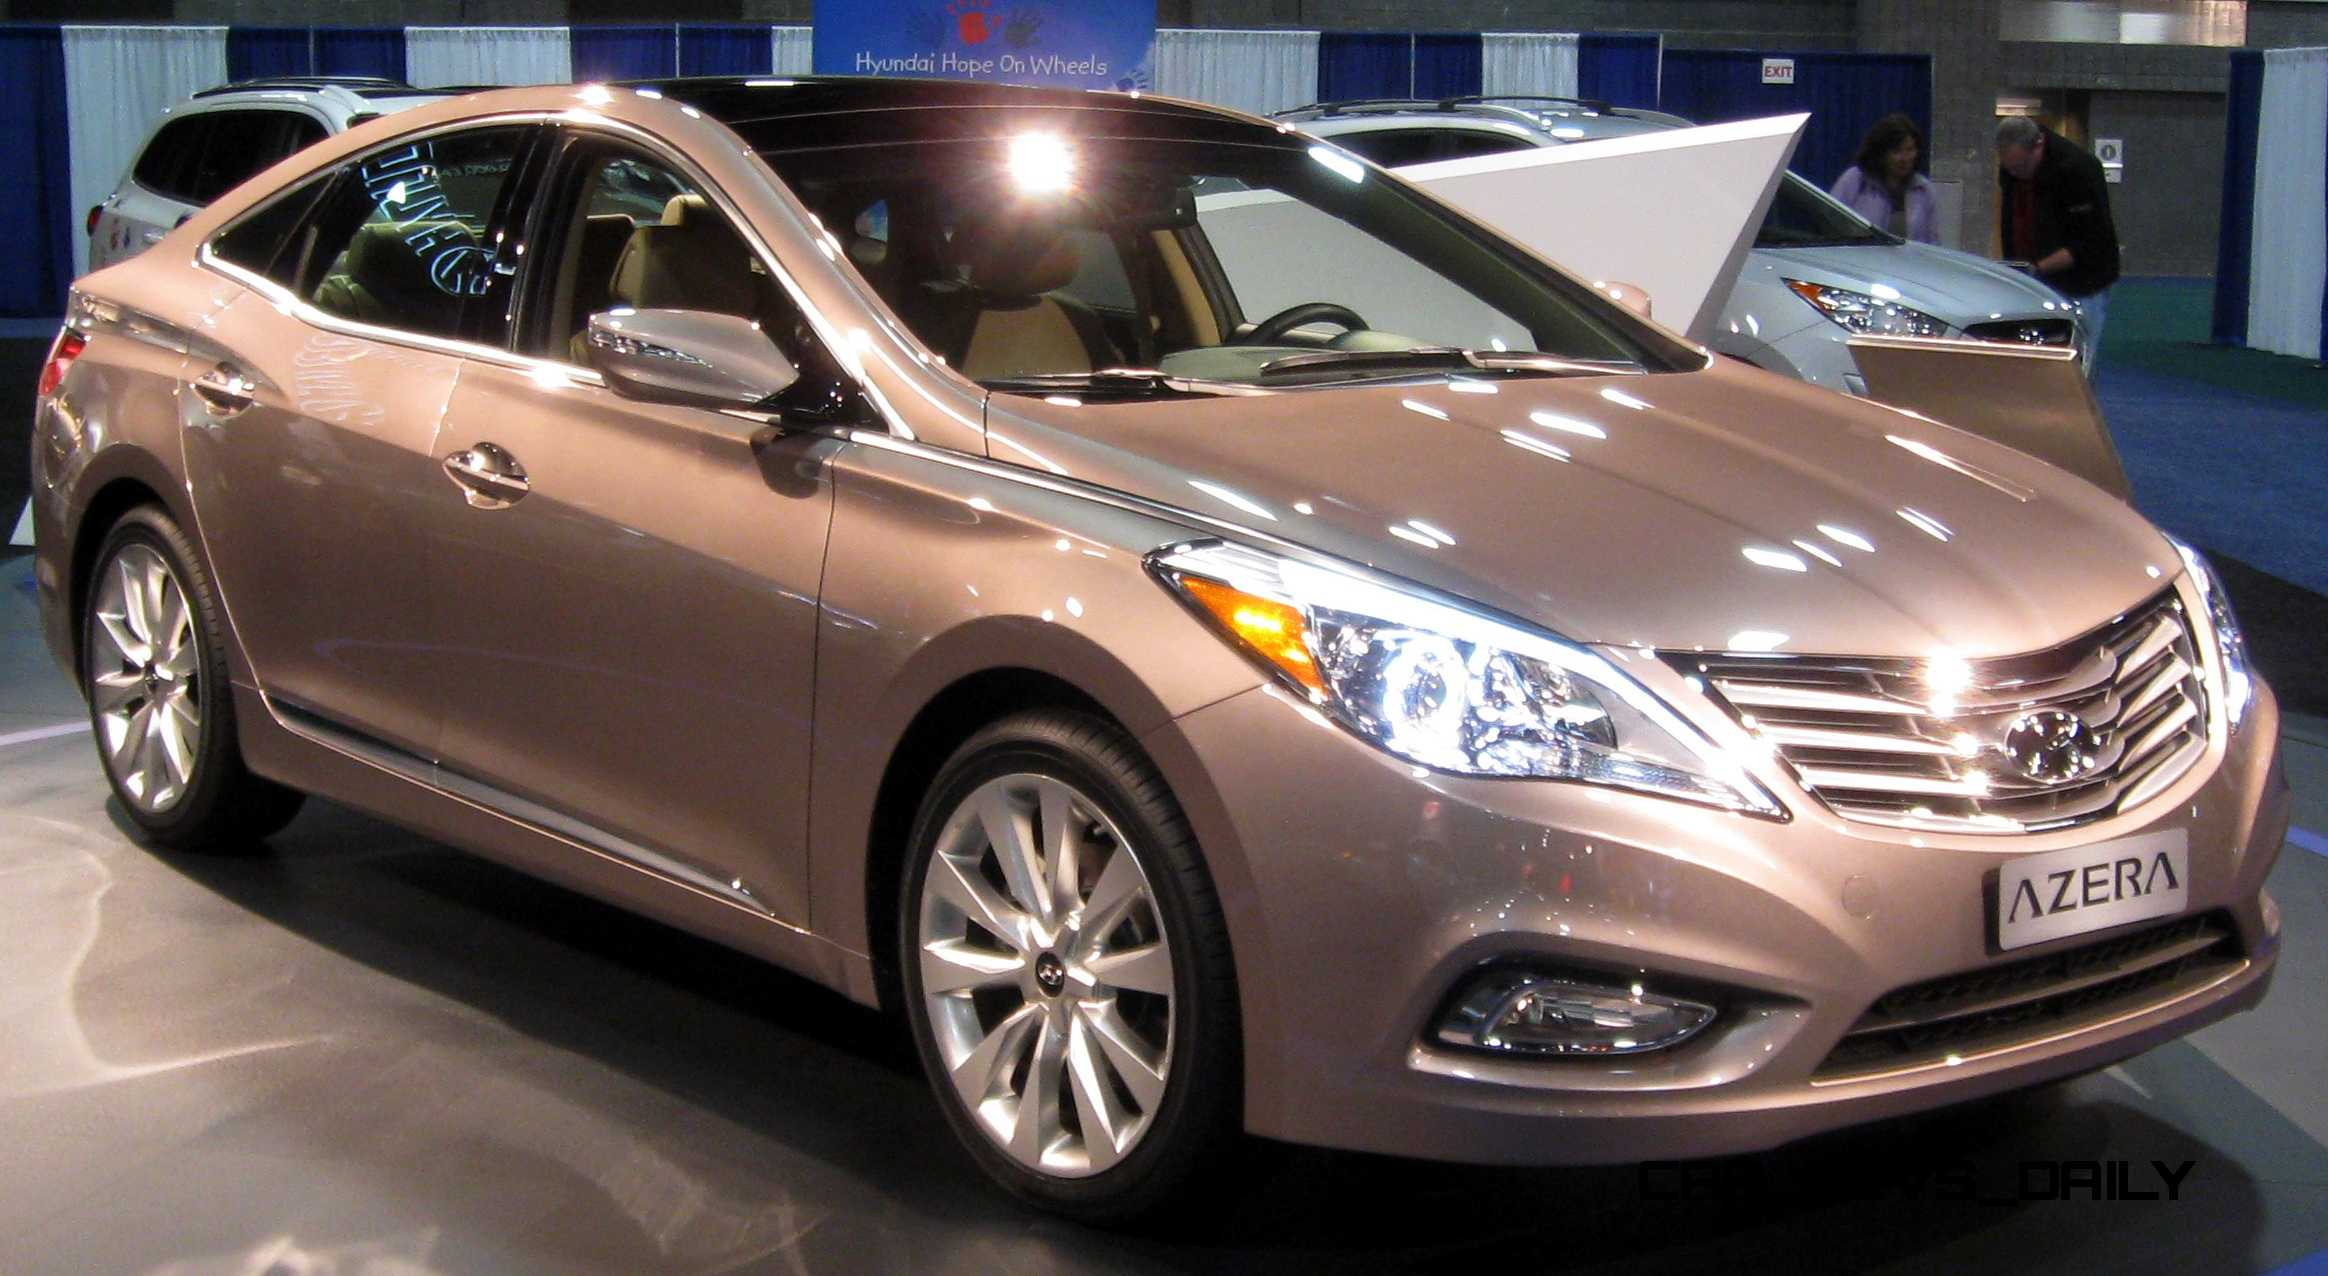 2015 Hyundai Azera First Look At Miami Auto Show